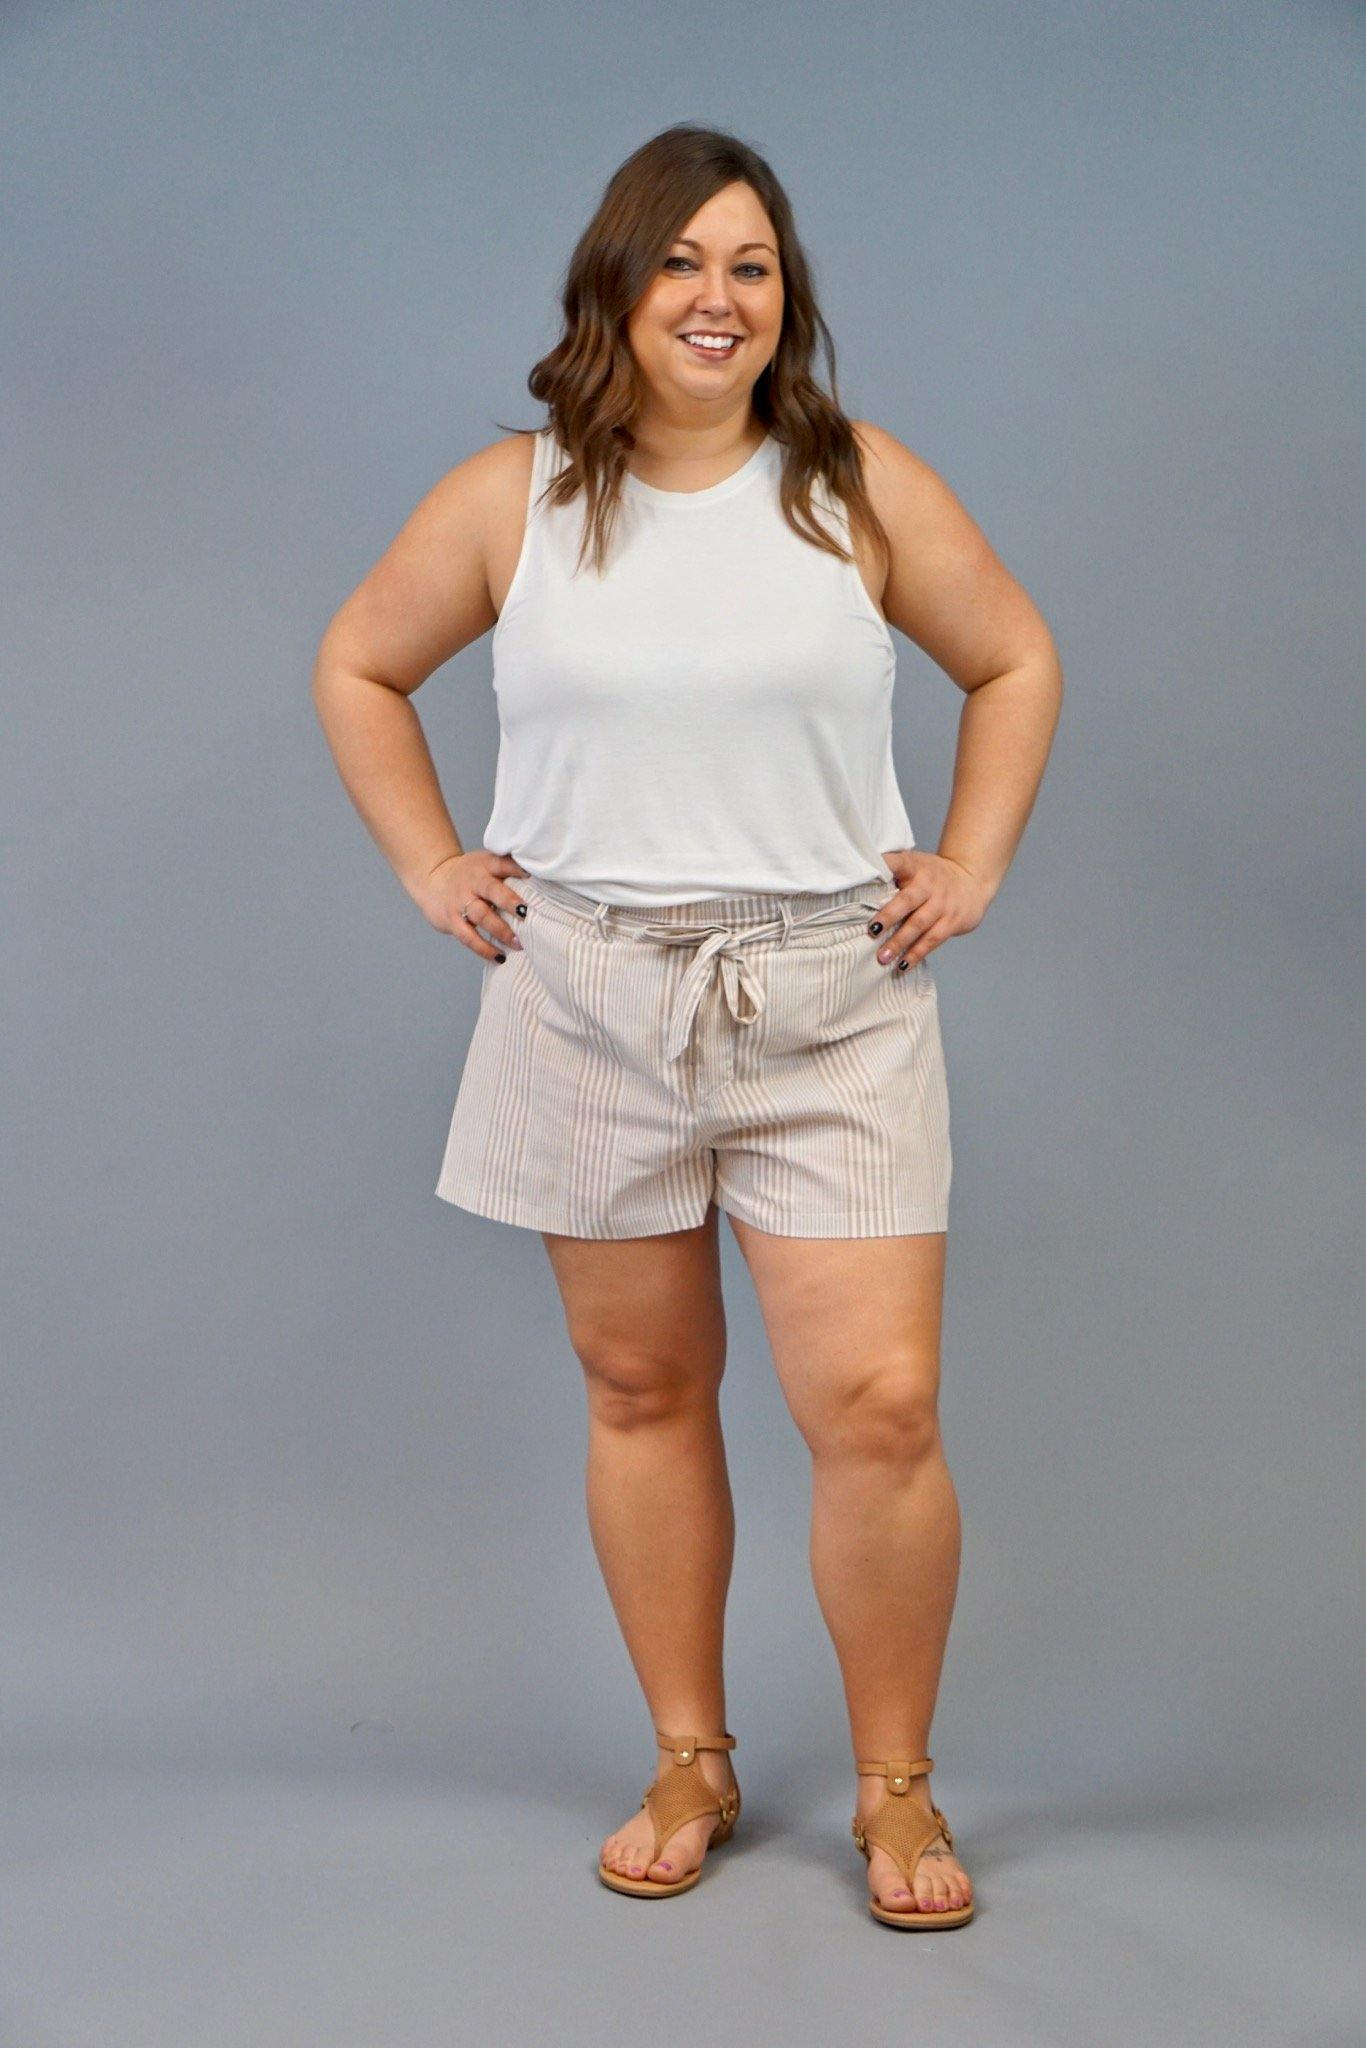 The Hamptons are calling your name!  These shorts are your perfect formal summer shorts.  These shorts are lightweight, khaki and white striped shorts.  They feature a paper bag waist and tie accent.  These shorts are very versatile and can also be dressed down with a Sara Bodysuit for a comfy daytime look.  The Local Online Plus Size Boutique.  The Local Online Curvy Boutique.  Curvy Shorts.  Plus Size Shorts.  Plus Size Paperbag shorts.  Curvy paperboy shorts.